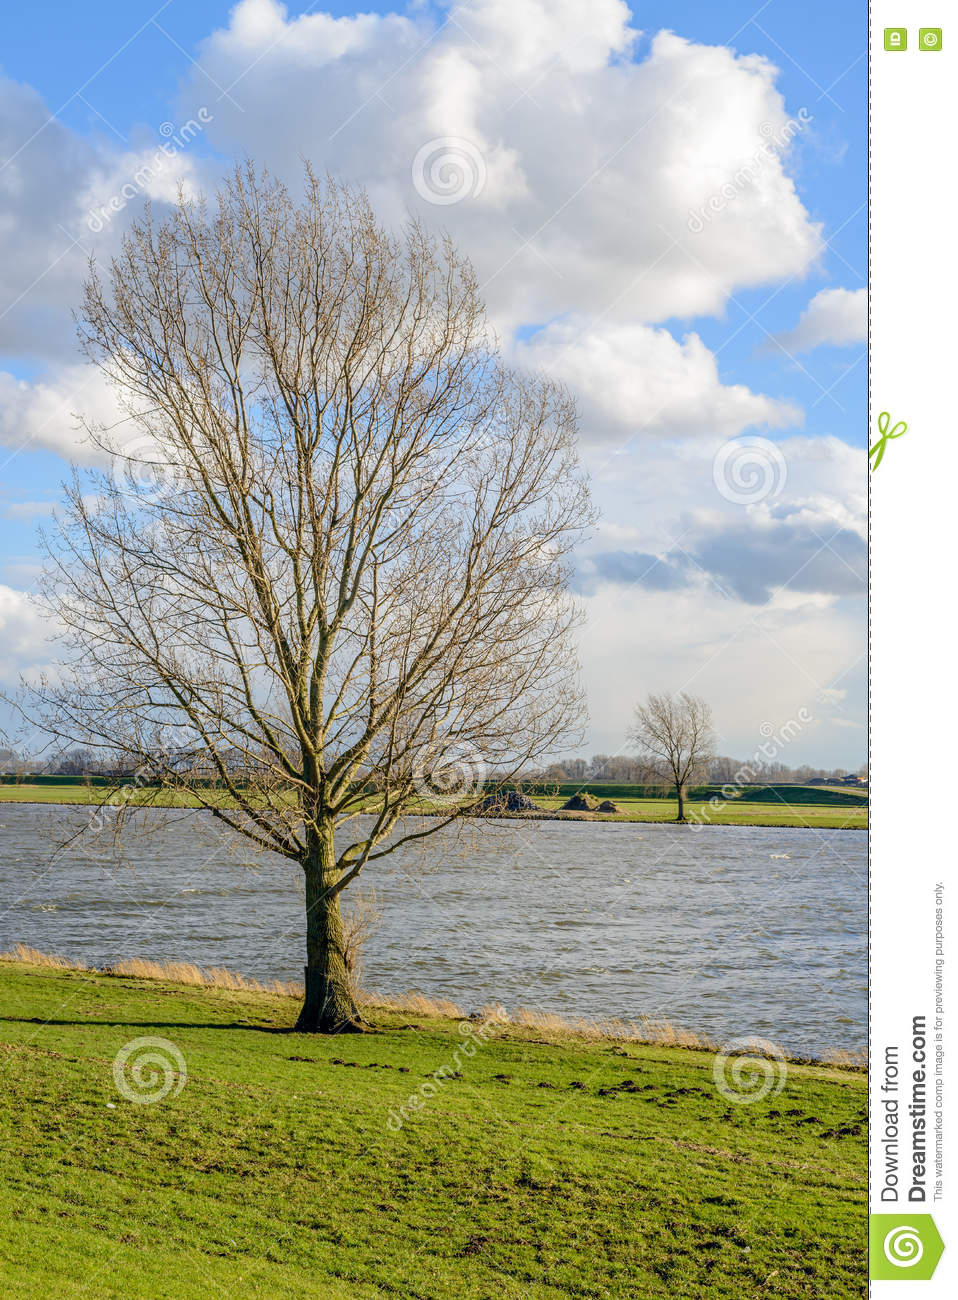 Tall leafless tree on the banks of a wide river